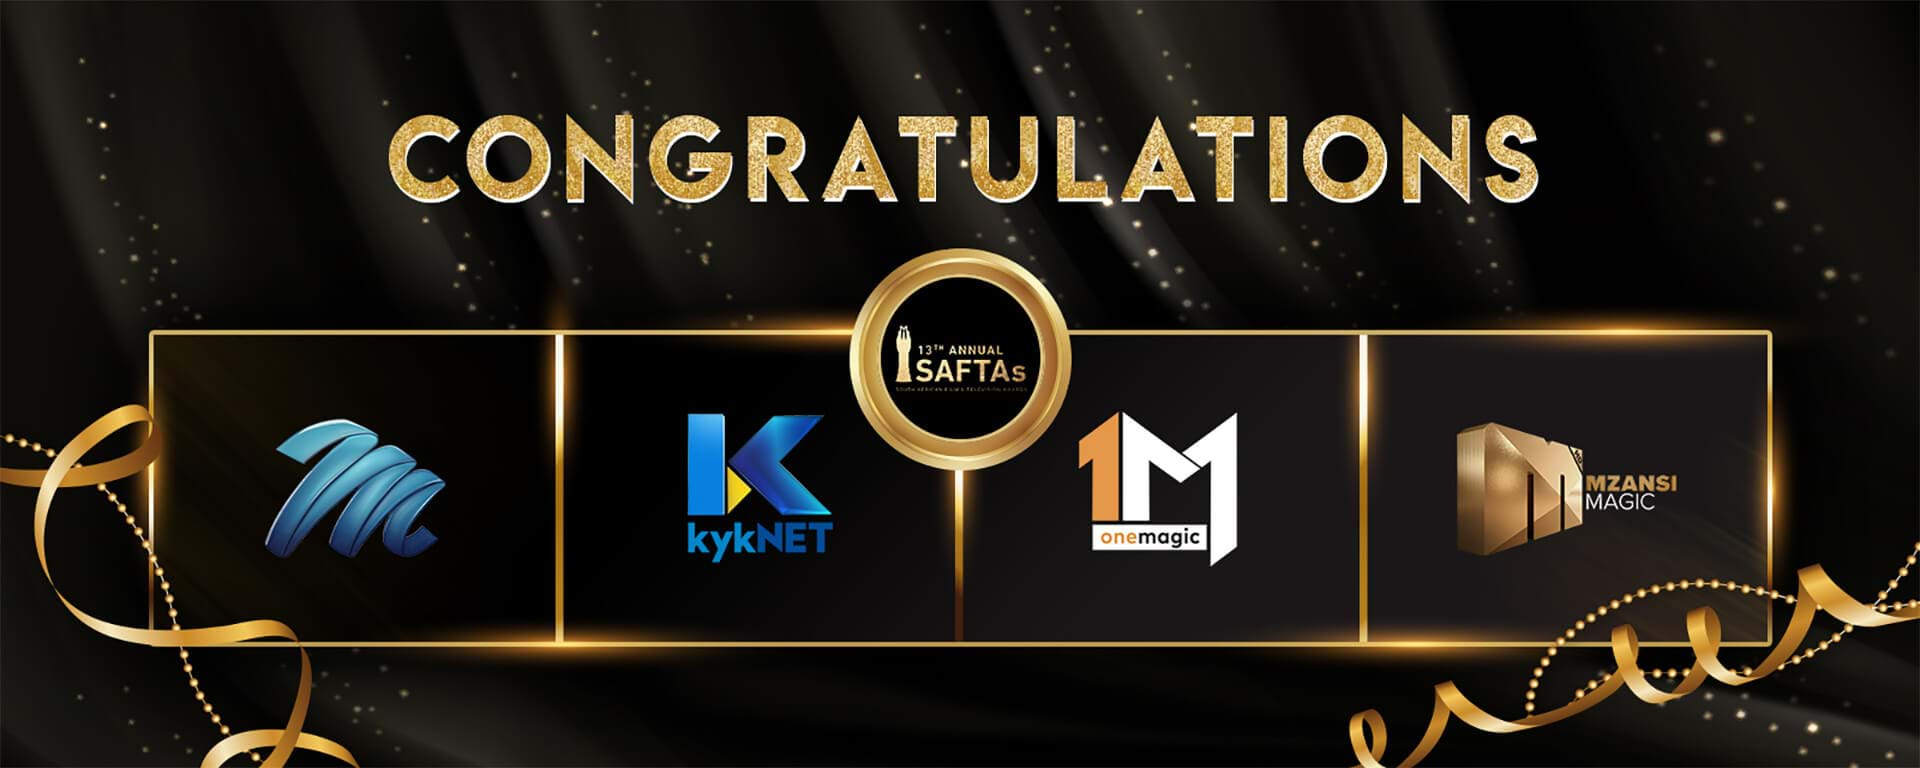 MultiChoice wins big at SAFTAs- image